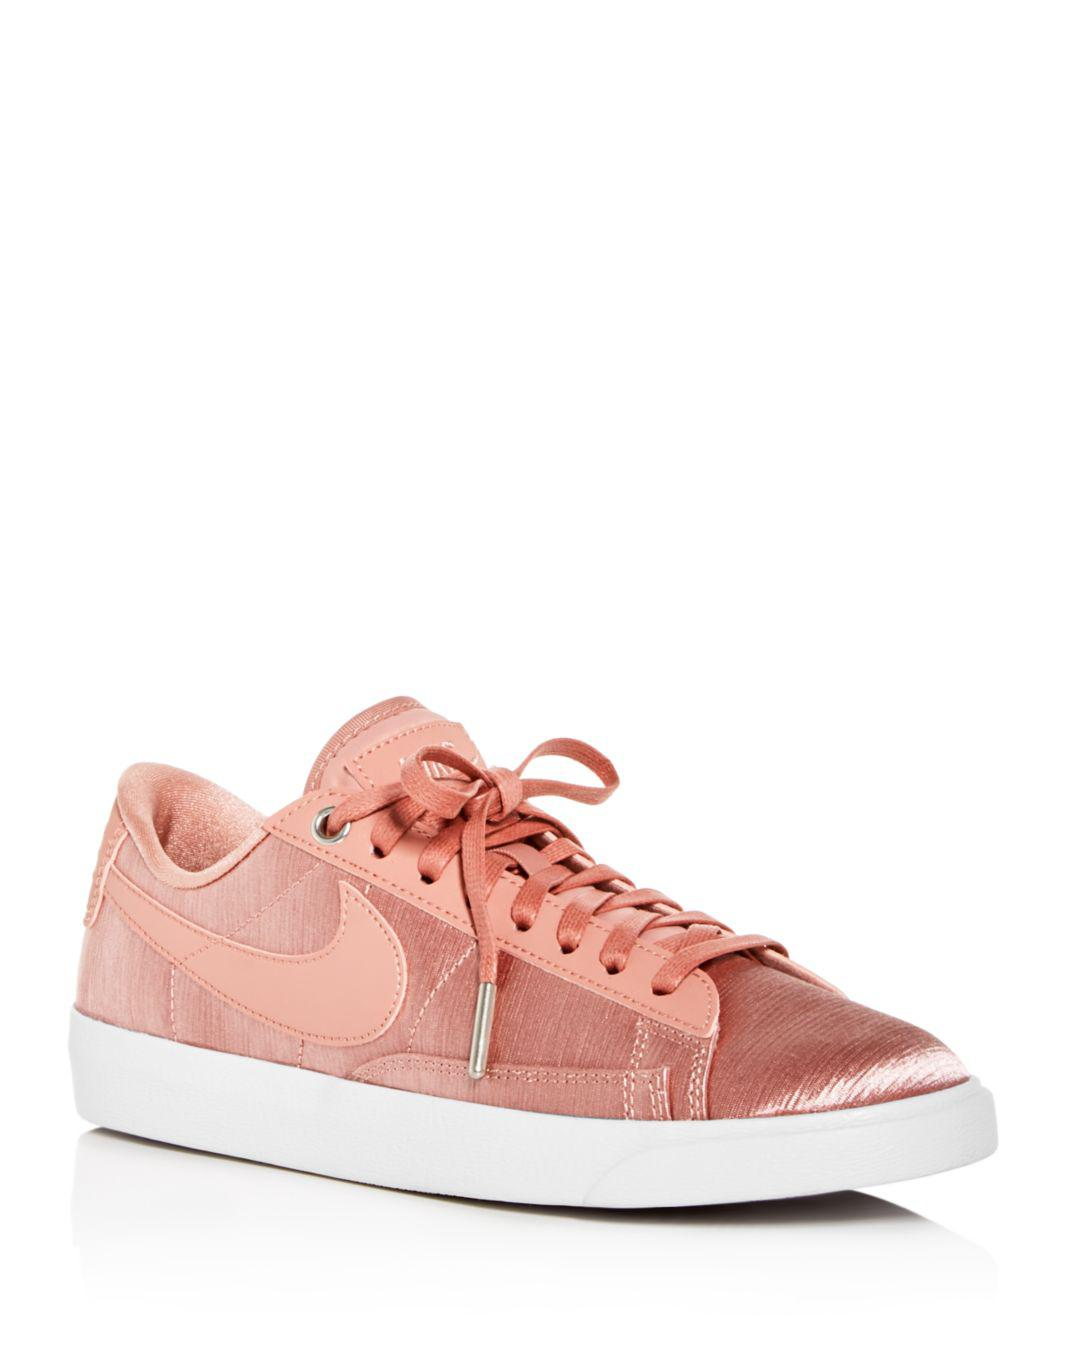 hot sale online b1954 e2252 Lyst - Nike Women s Blazer Embossed Satin   Leather Lace Up Sneakers ...